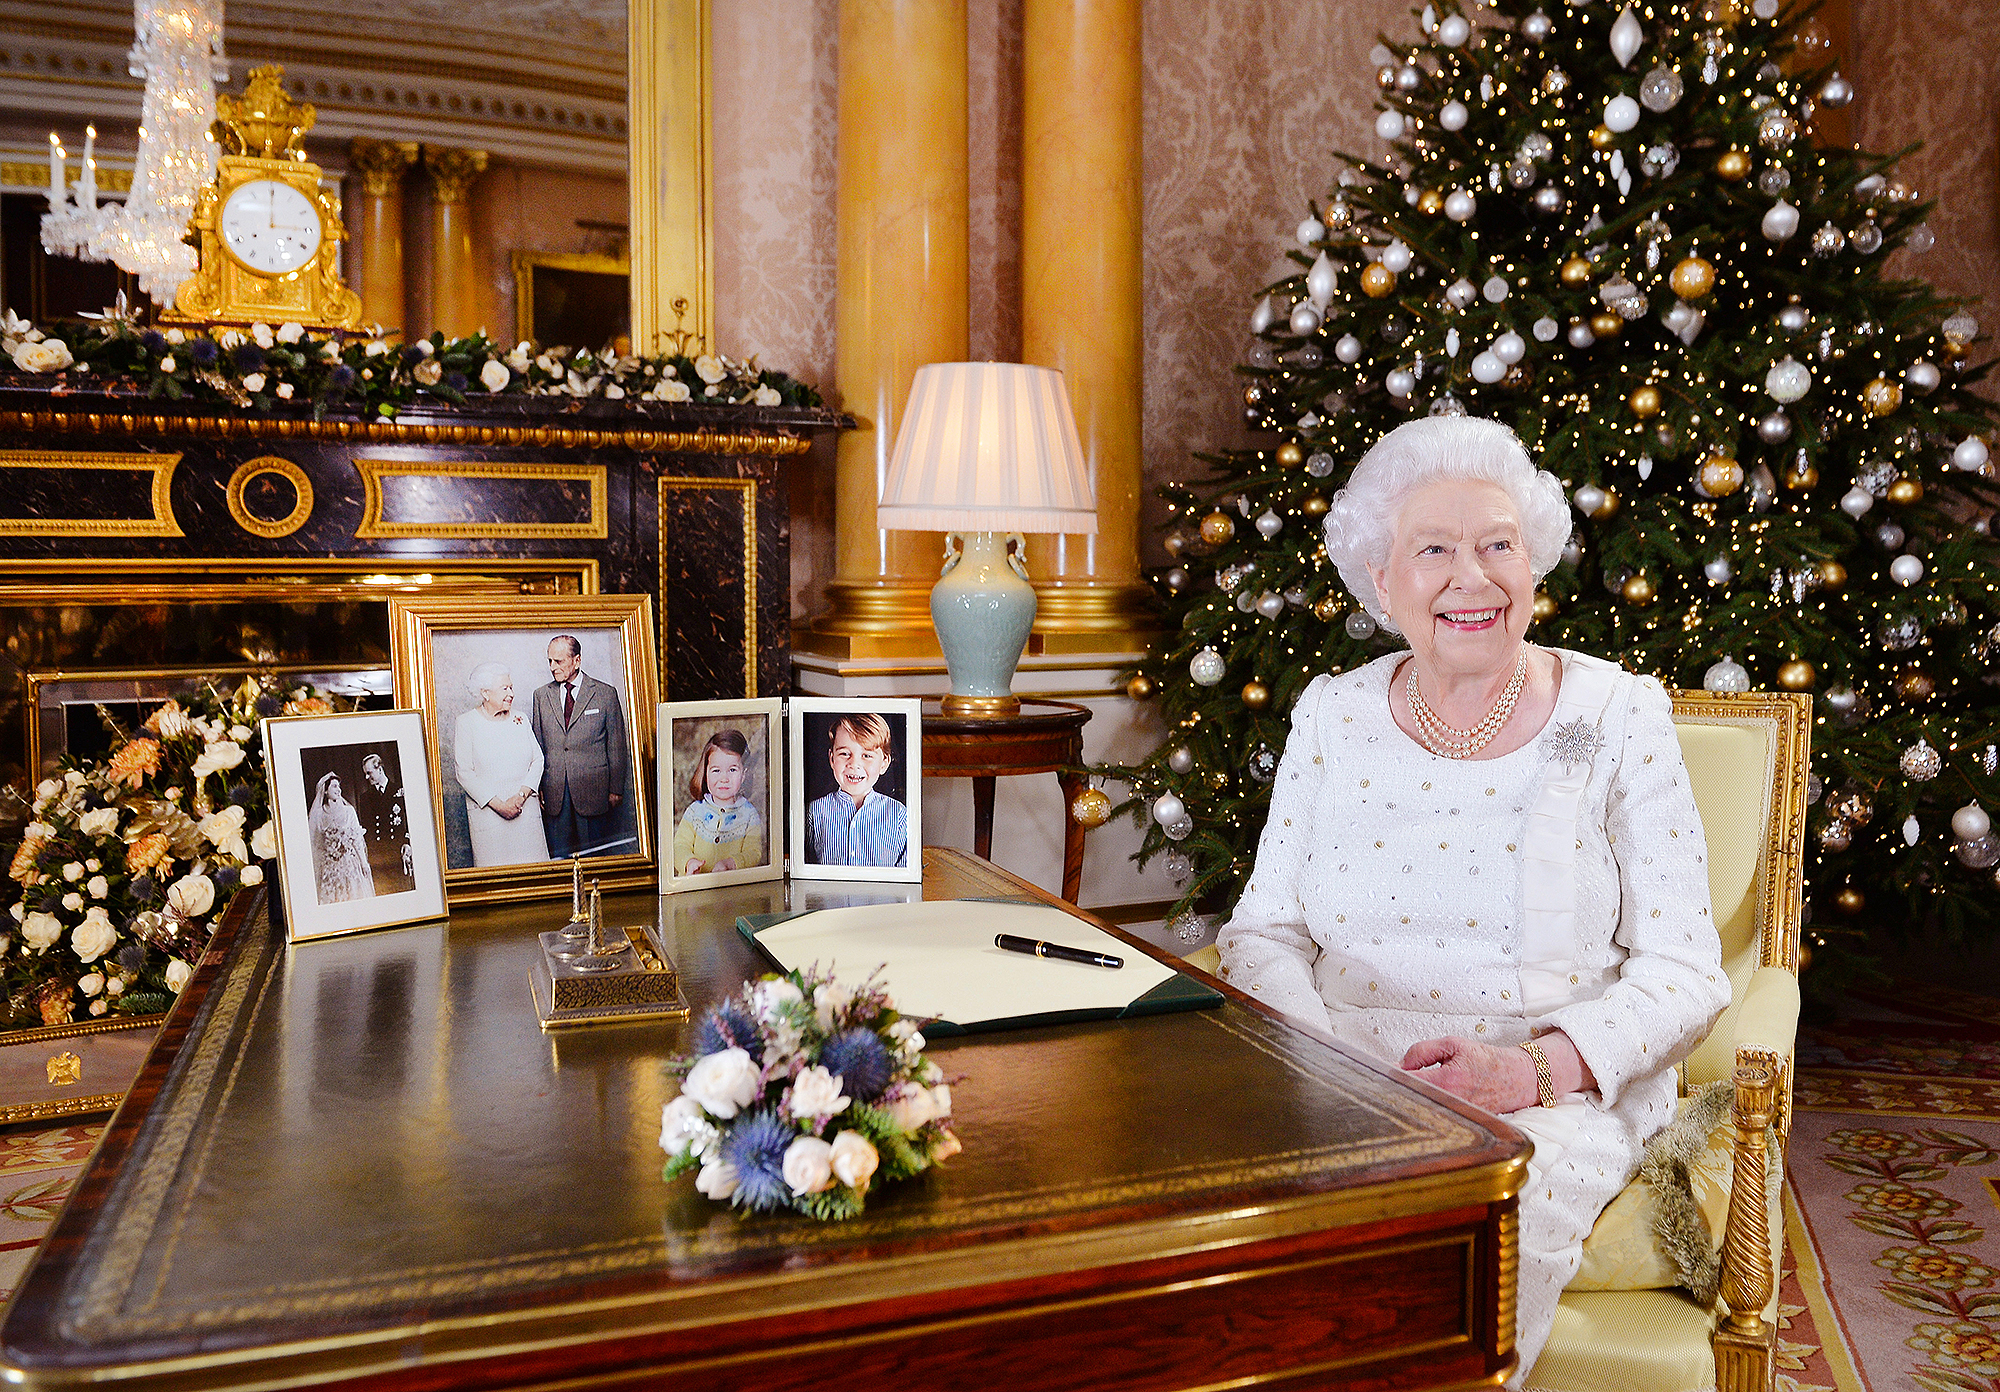 Where the Queen's Fast-Thinking Aide Found a Photo of Prince George in Time for Her Christmas Address